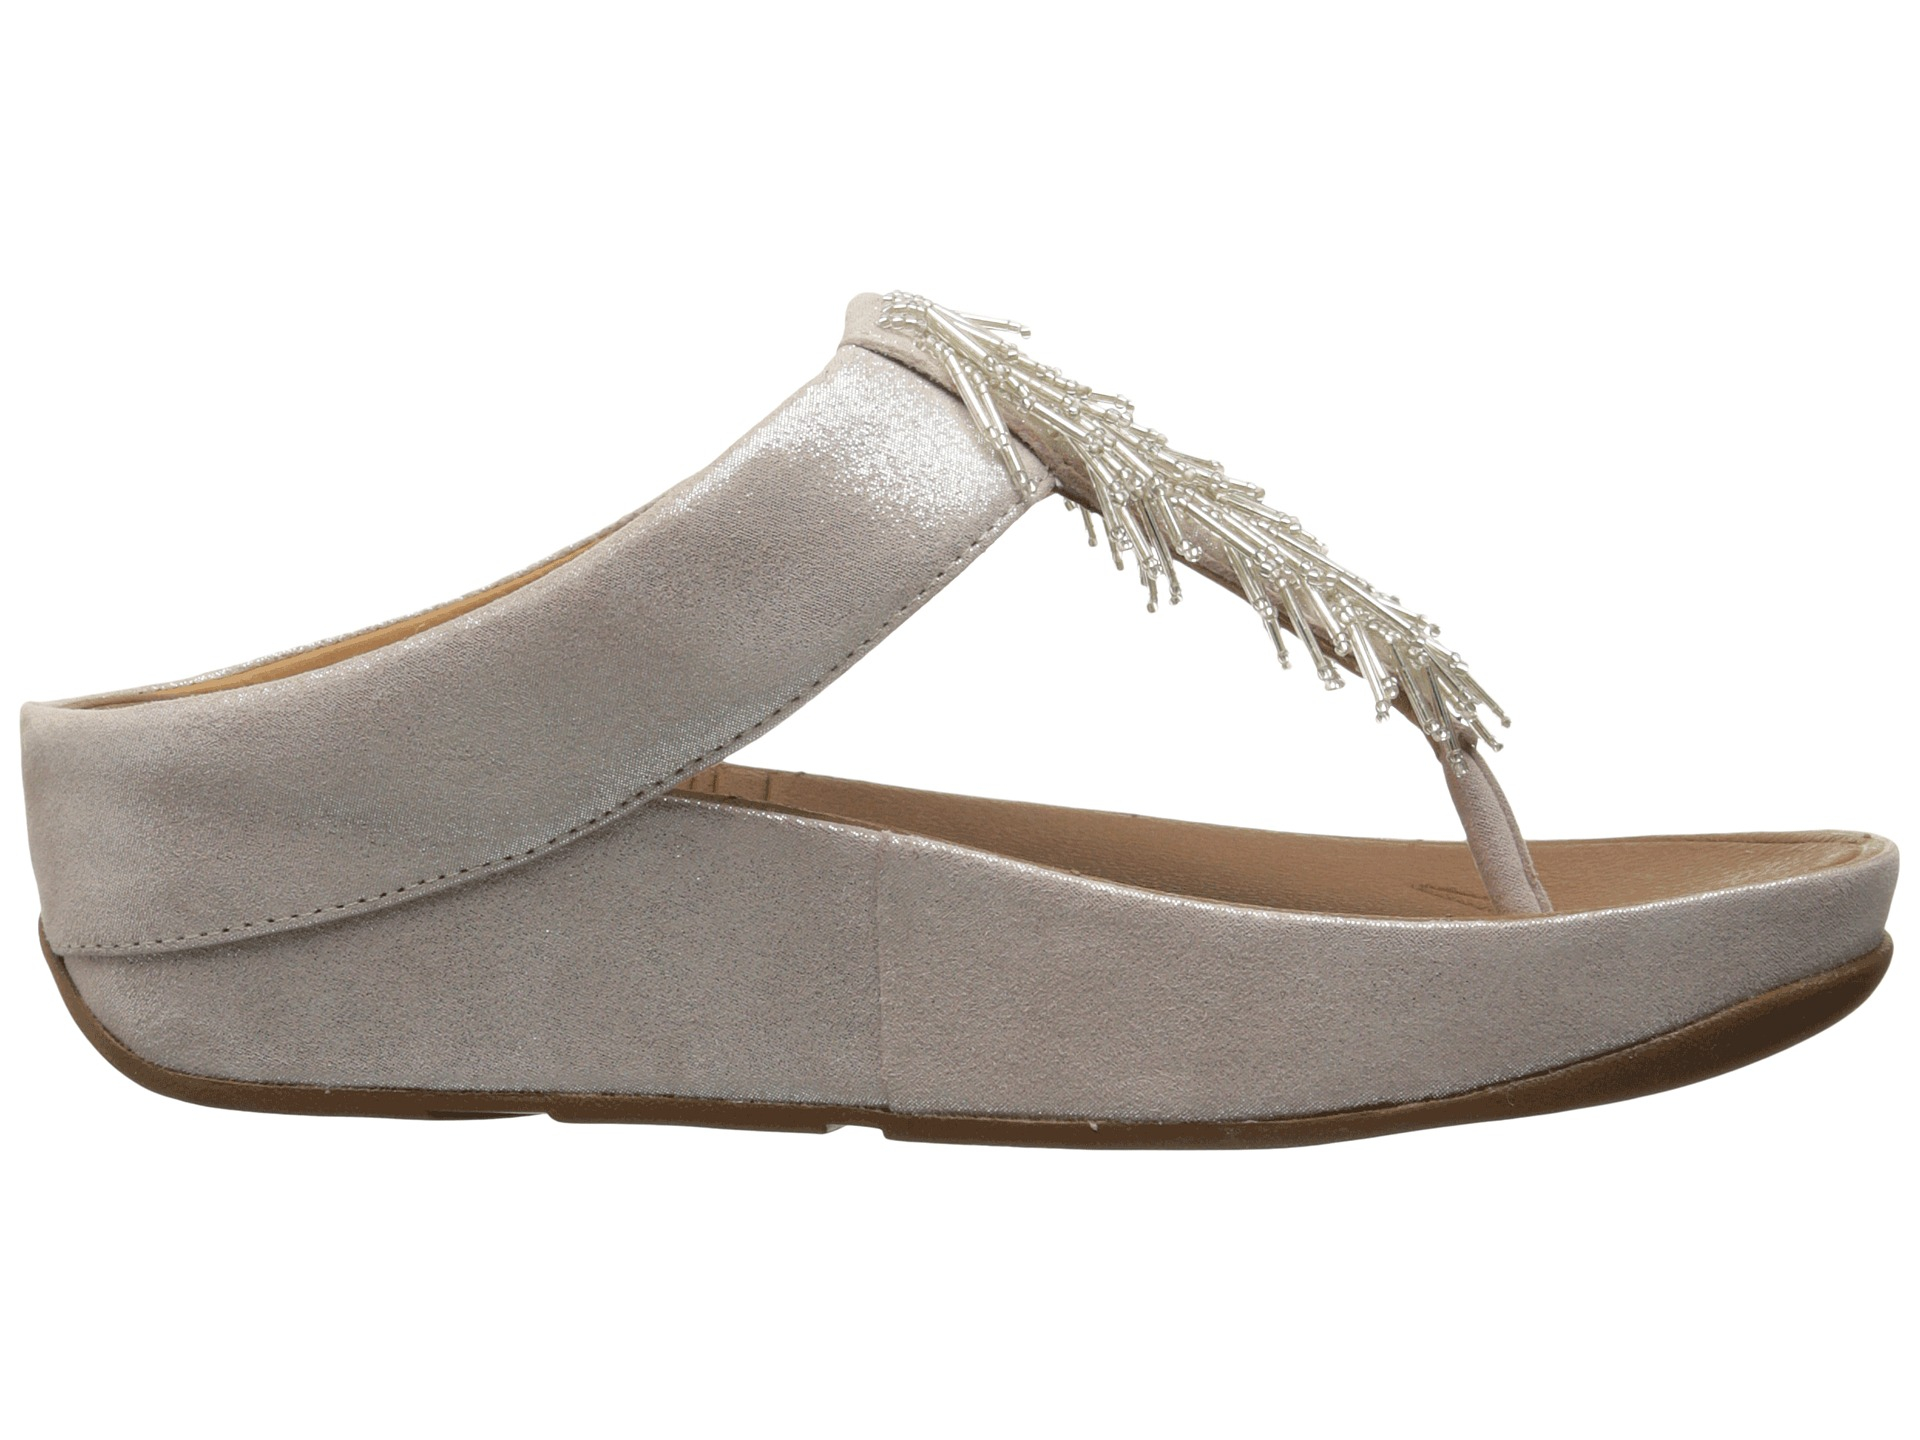 Fitflop Cha Cha Leather Flip Flops In Silver  Lyst-2672